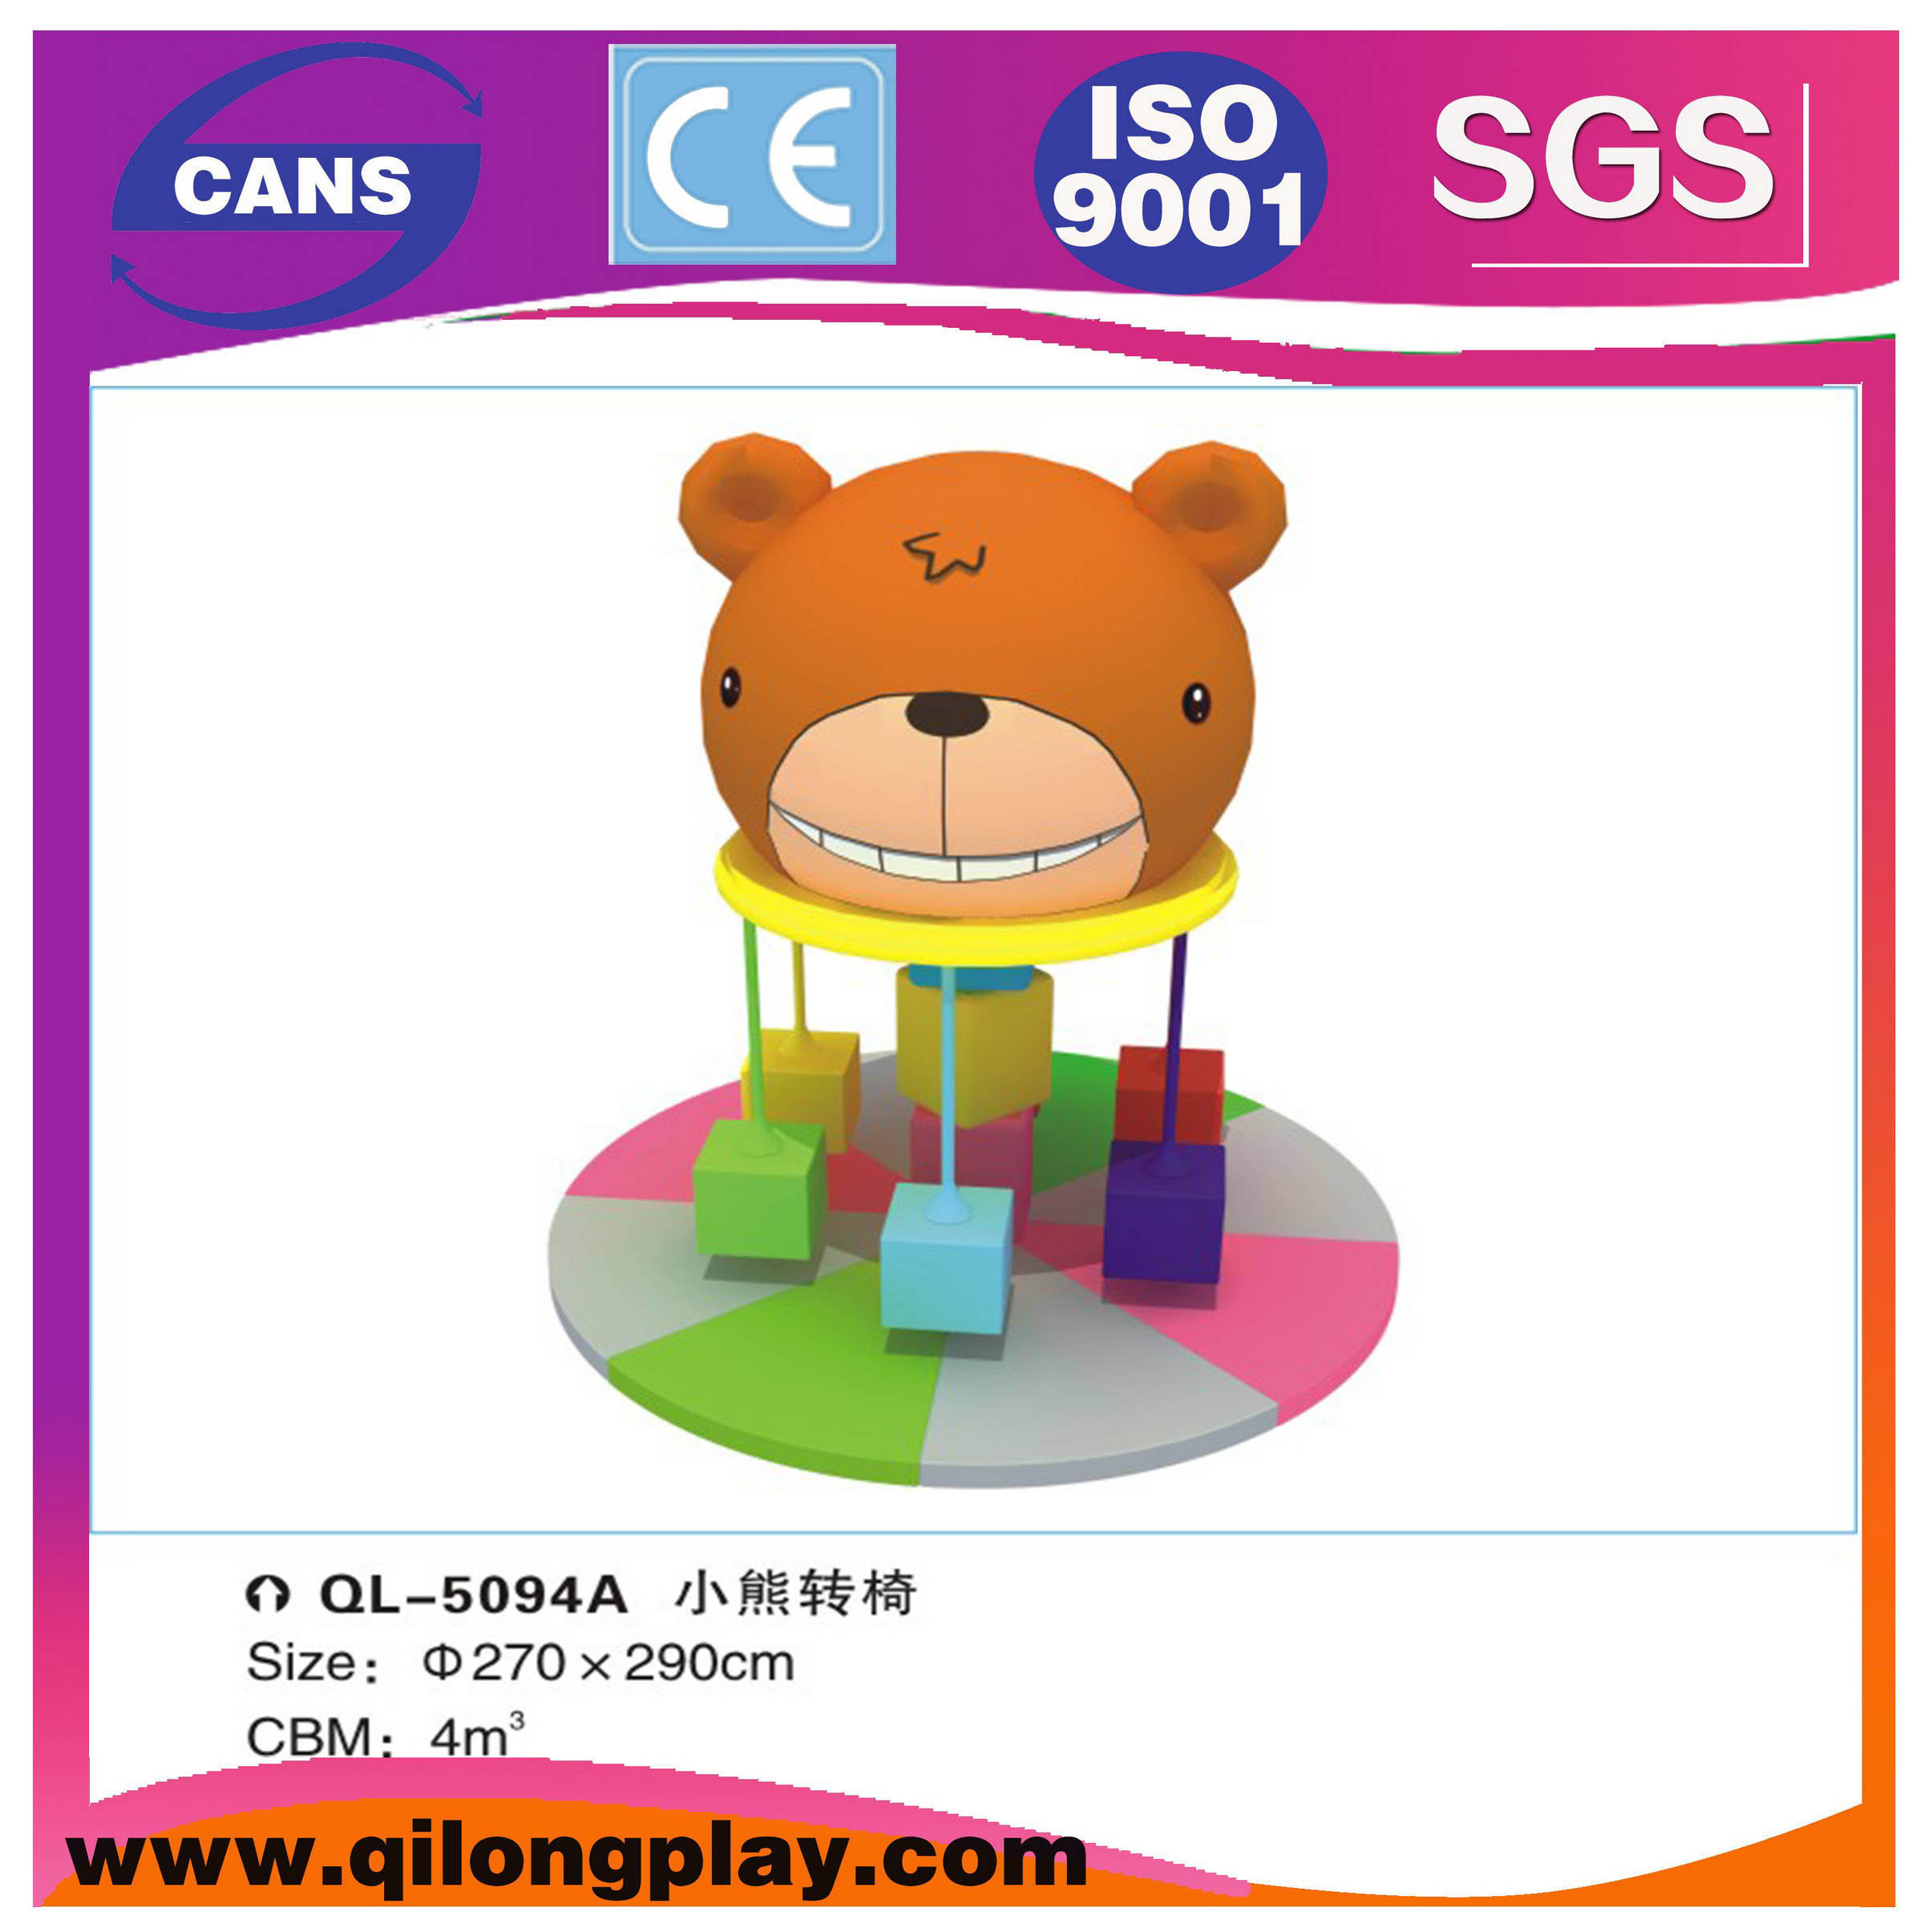 Wondrous Hot Item Bear Chair Electric Soft Play For Kids Ql A102 7 Pabps2019 Chair Design Images Pabps2019Com